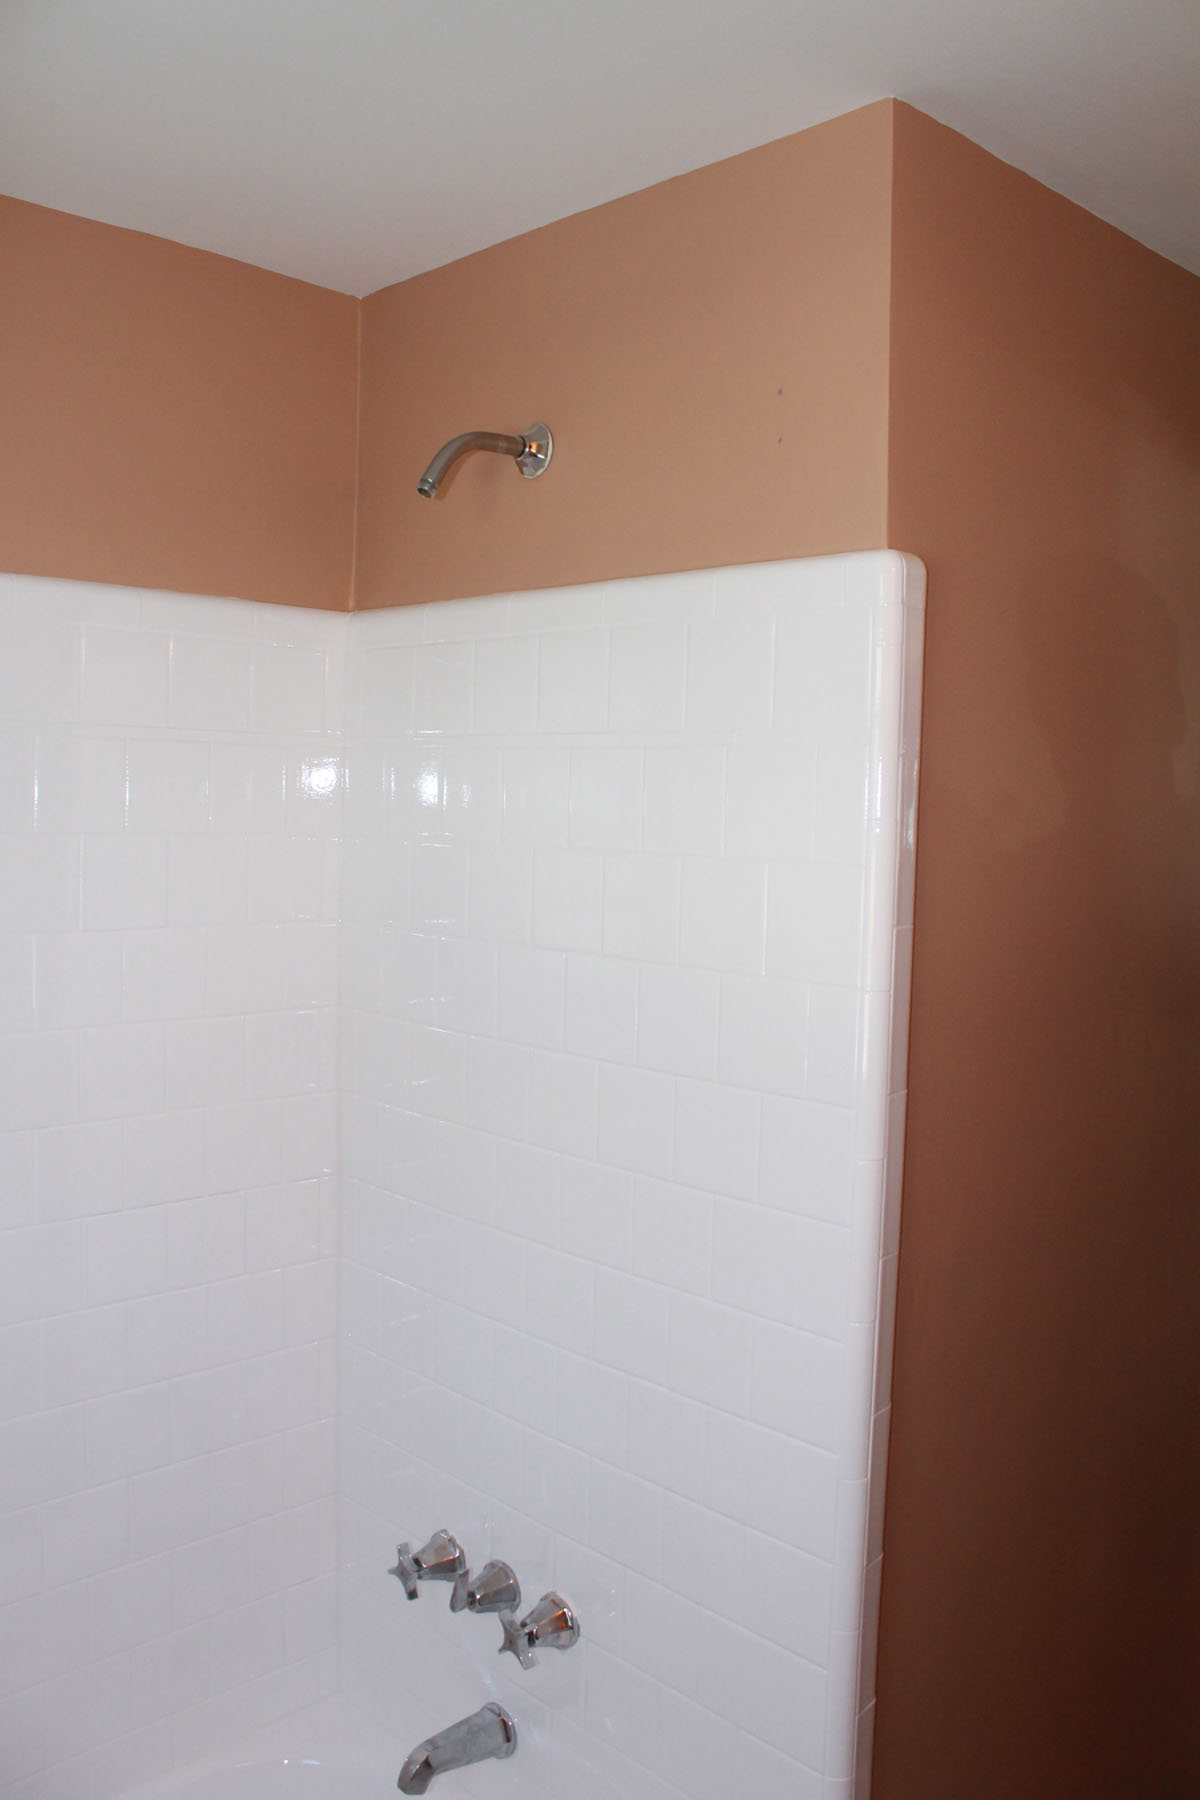 Clean white refinished tile in shower